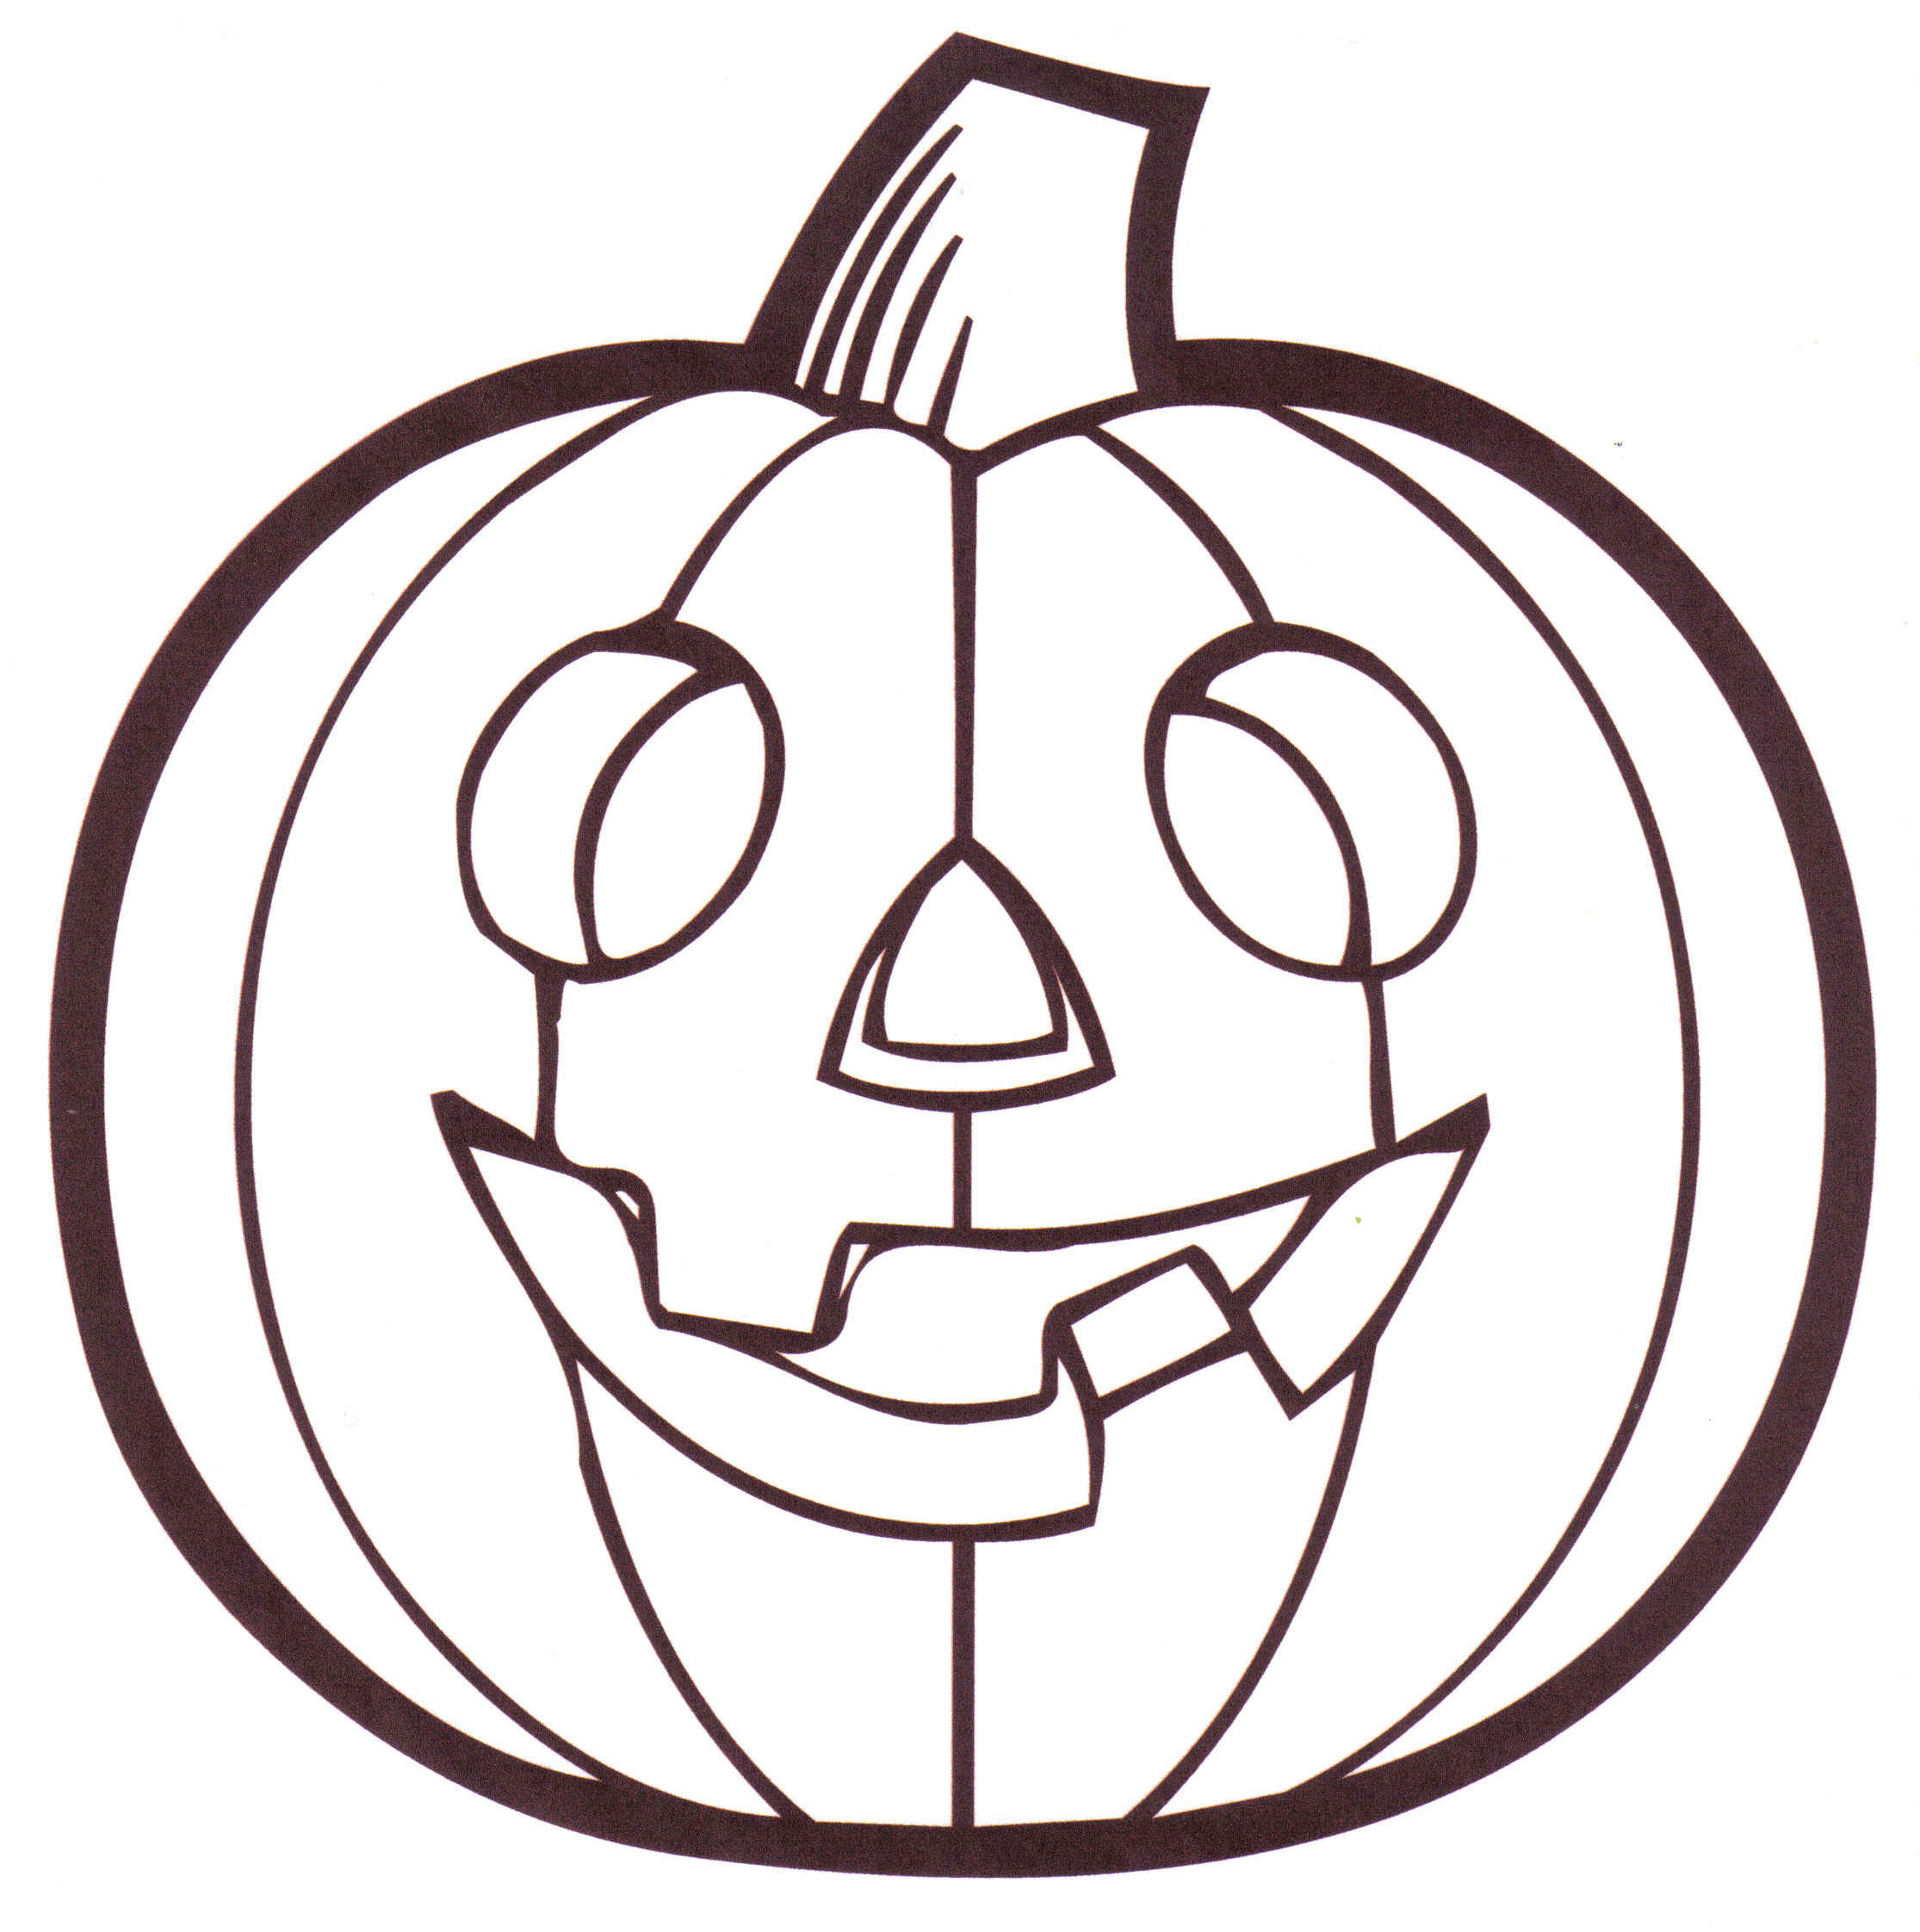 Pumpkin coloring pages for kids - Pumpkin Coloring Sheets